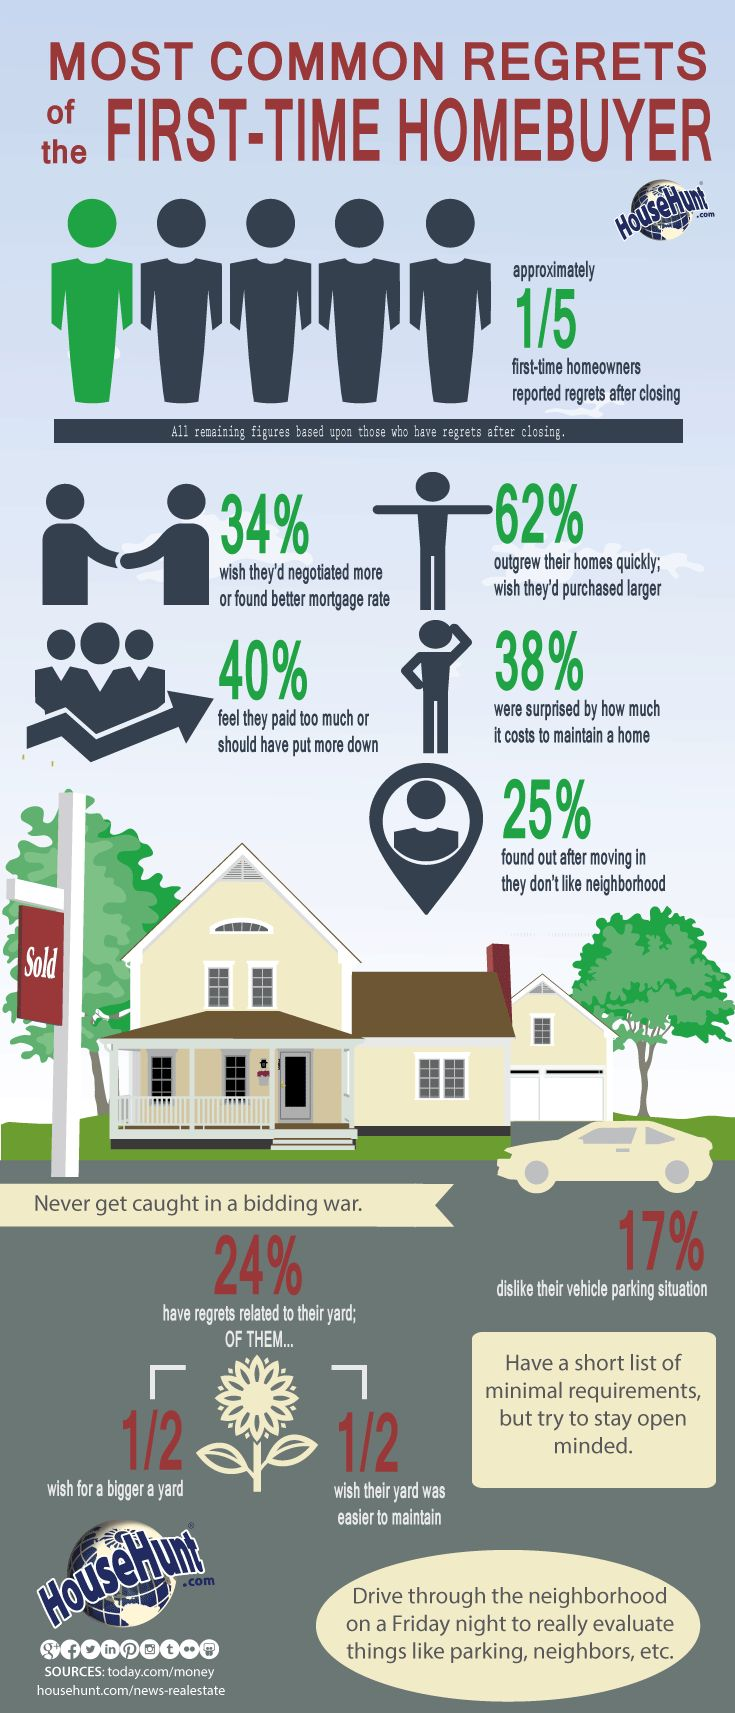 Most Common Regrets of the First Time Homebuyer #Infographic : http://www.househunt.com/news-realestate/most-common-regrets-of-the-first-time-homebuyer/